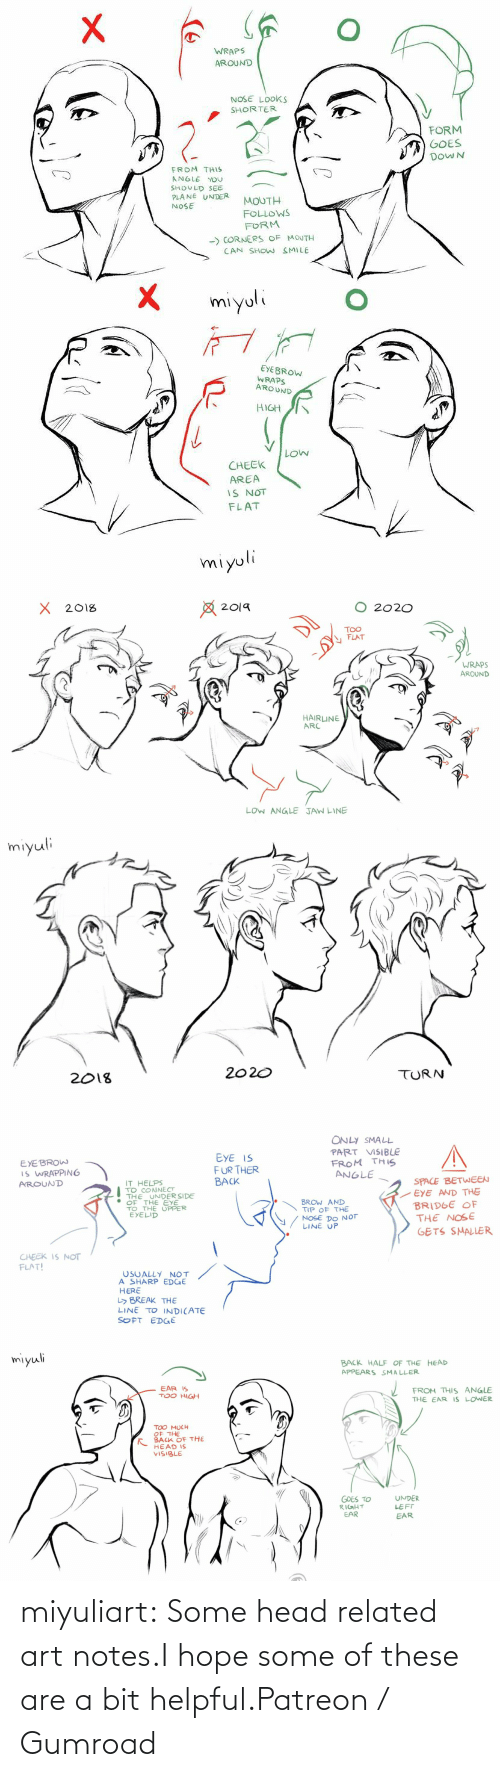 head: miyuliart: Some head related art notes.I hope some of these are a bit helpful.Patreon / Gumroad